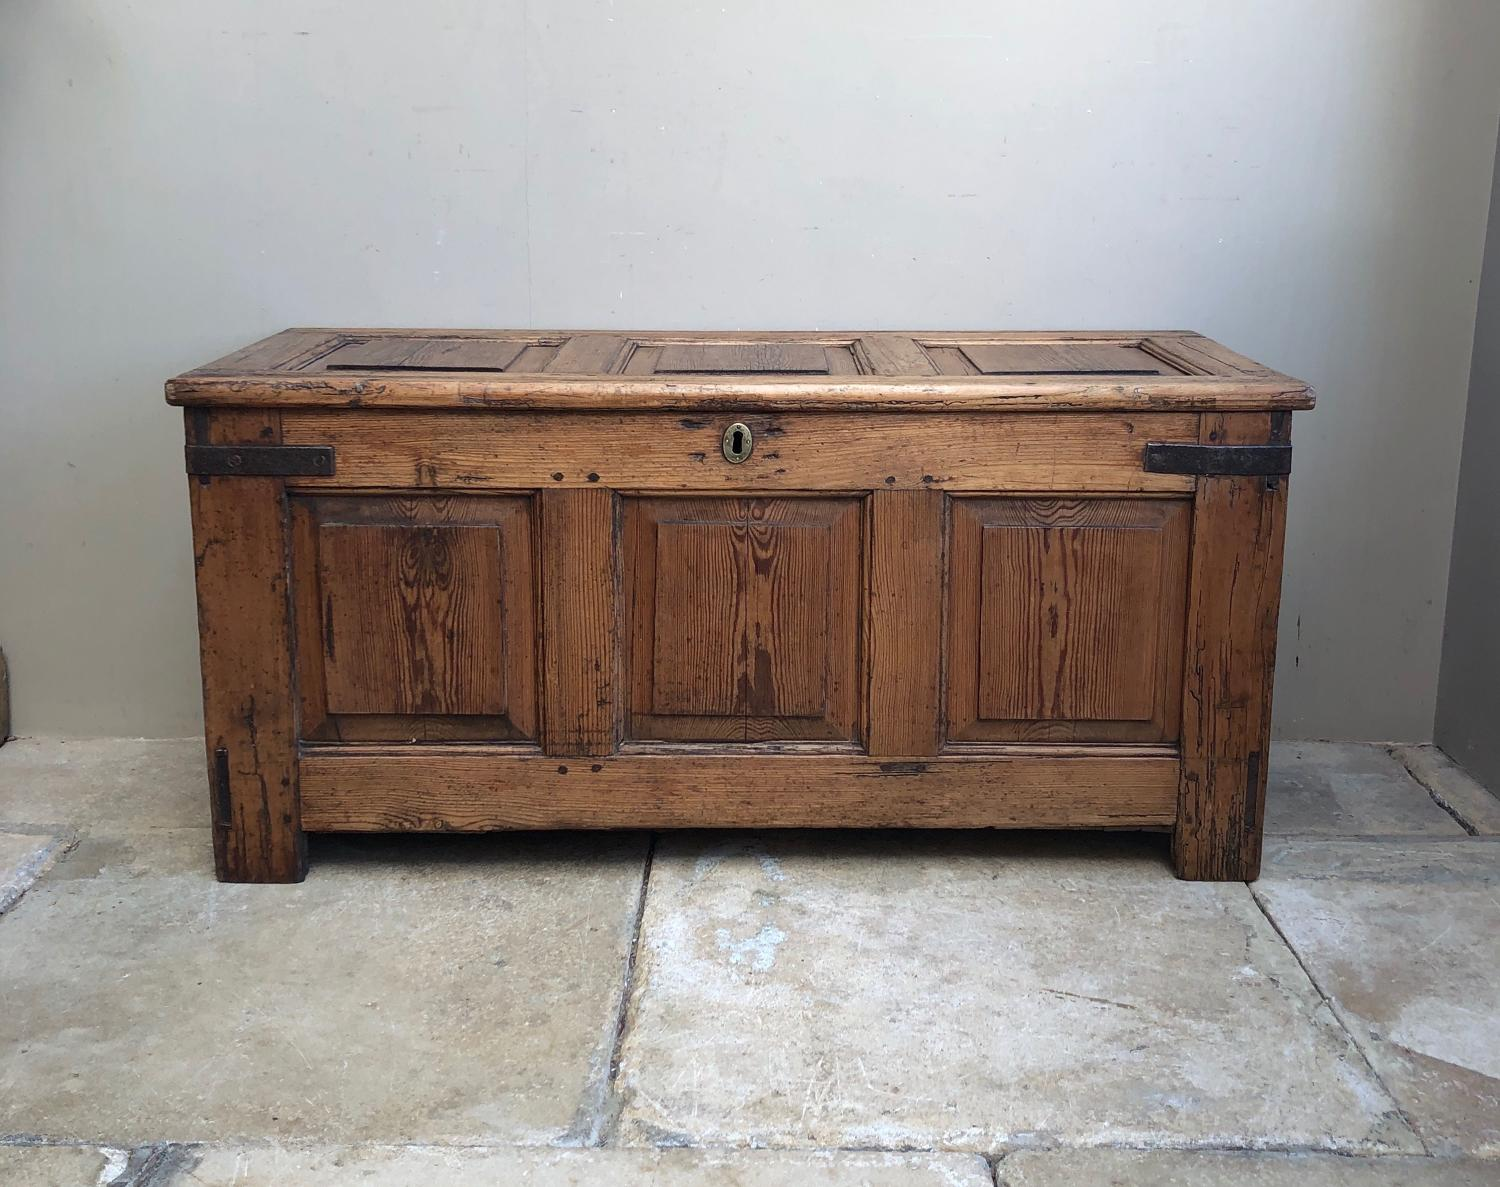 Excellent Condition Mid 18thC Georgian Pine Panelled Coffer c.1750